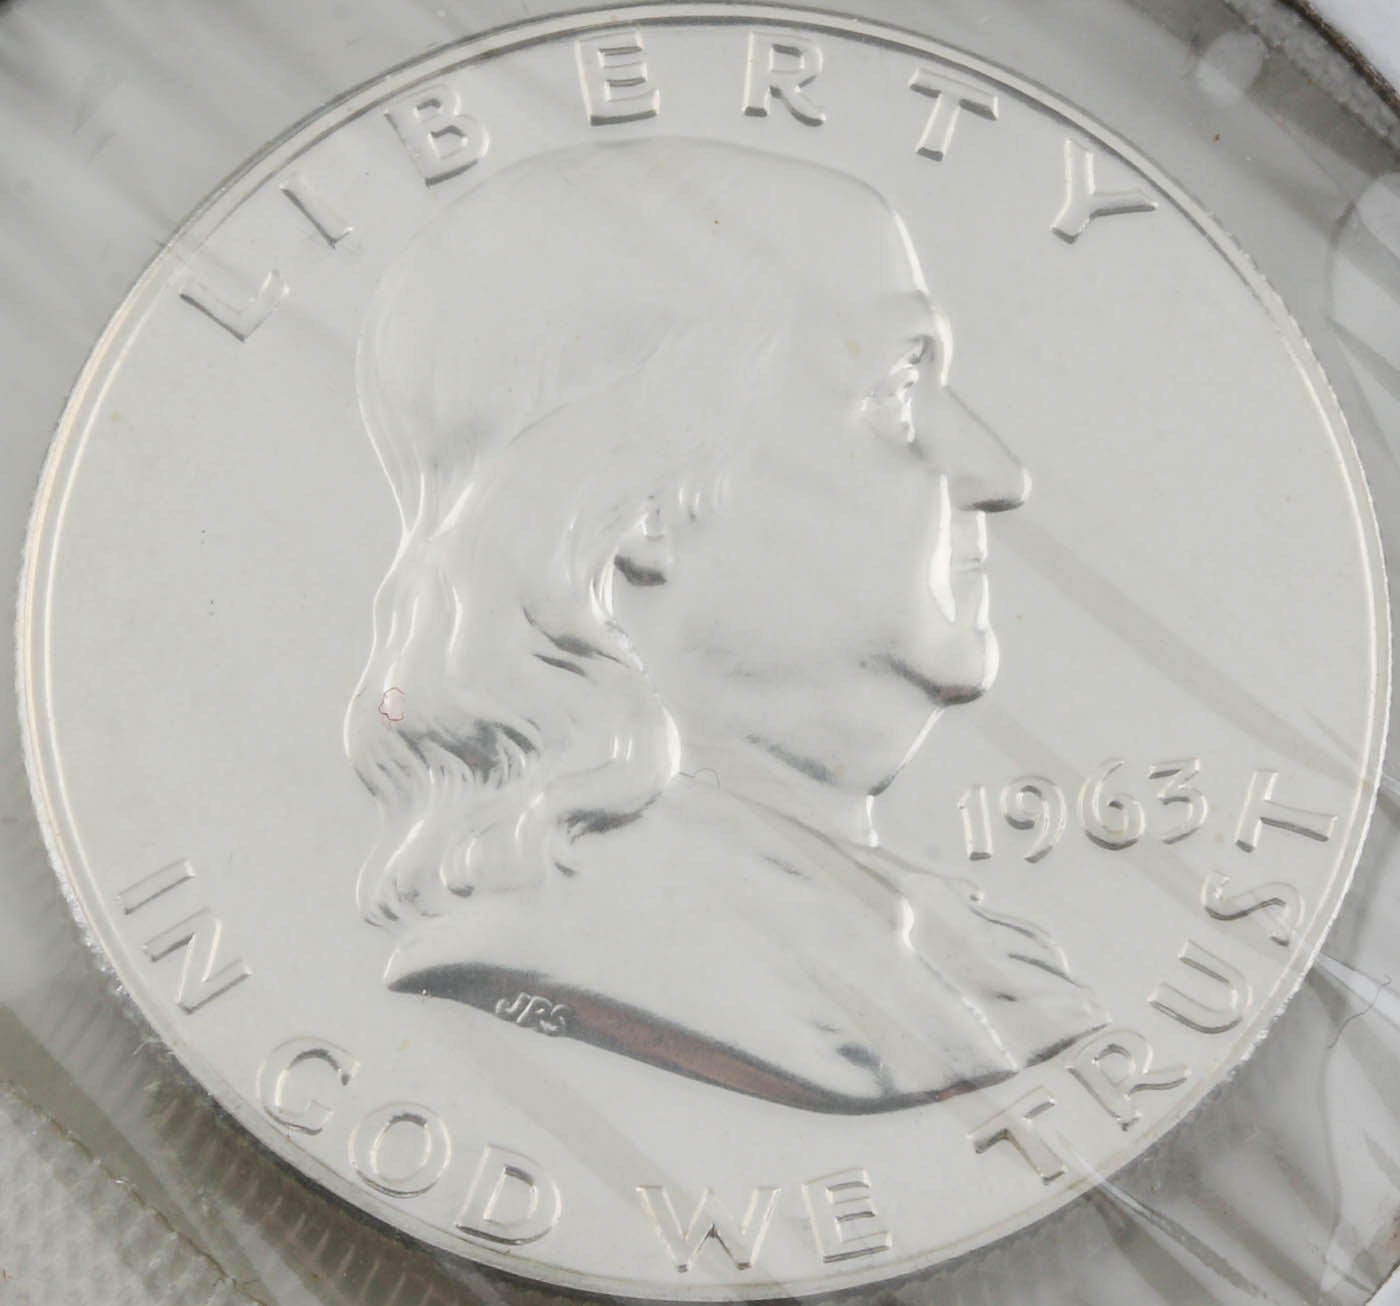 1963 Franklin Silver Half Dollar Proof Coin